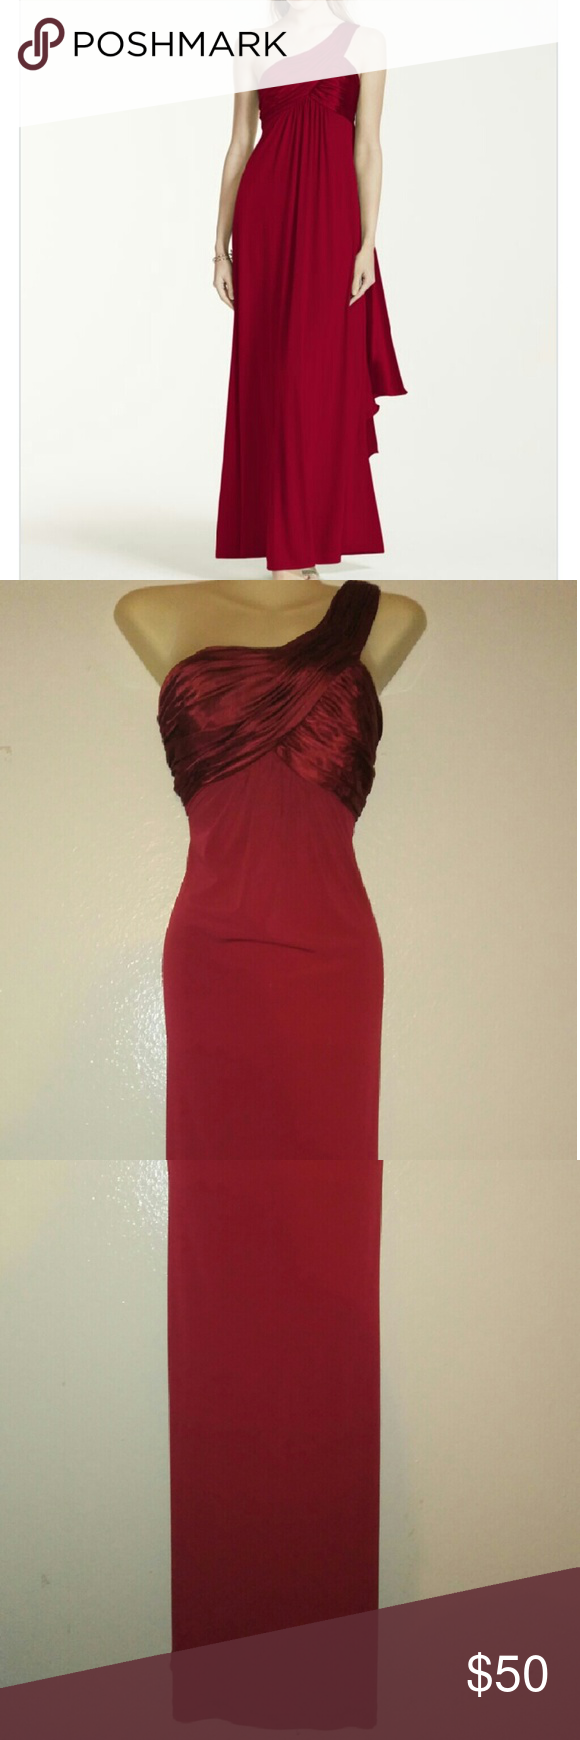 Davids Bridal Jersey Cascade Red Gown Davids Bridal Jersey Cascade red dress. Long, one shoulder, silky bust, zip up, burgandy. Size 10 Formal. Prom. Ball. Davids Bridal Dresses Prom